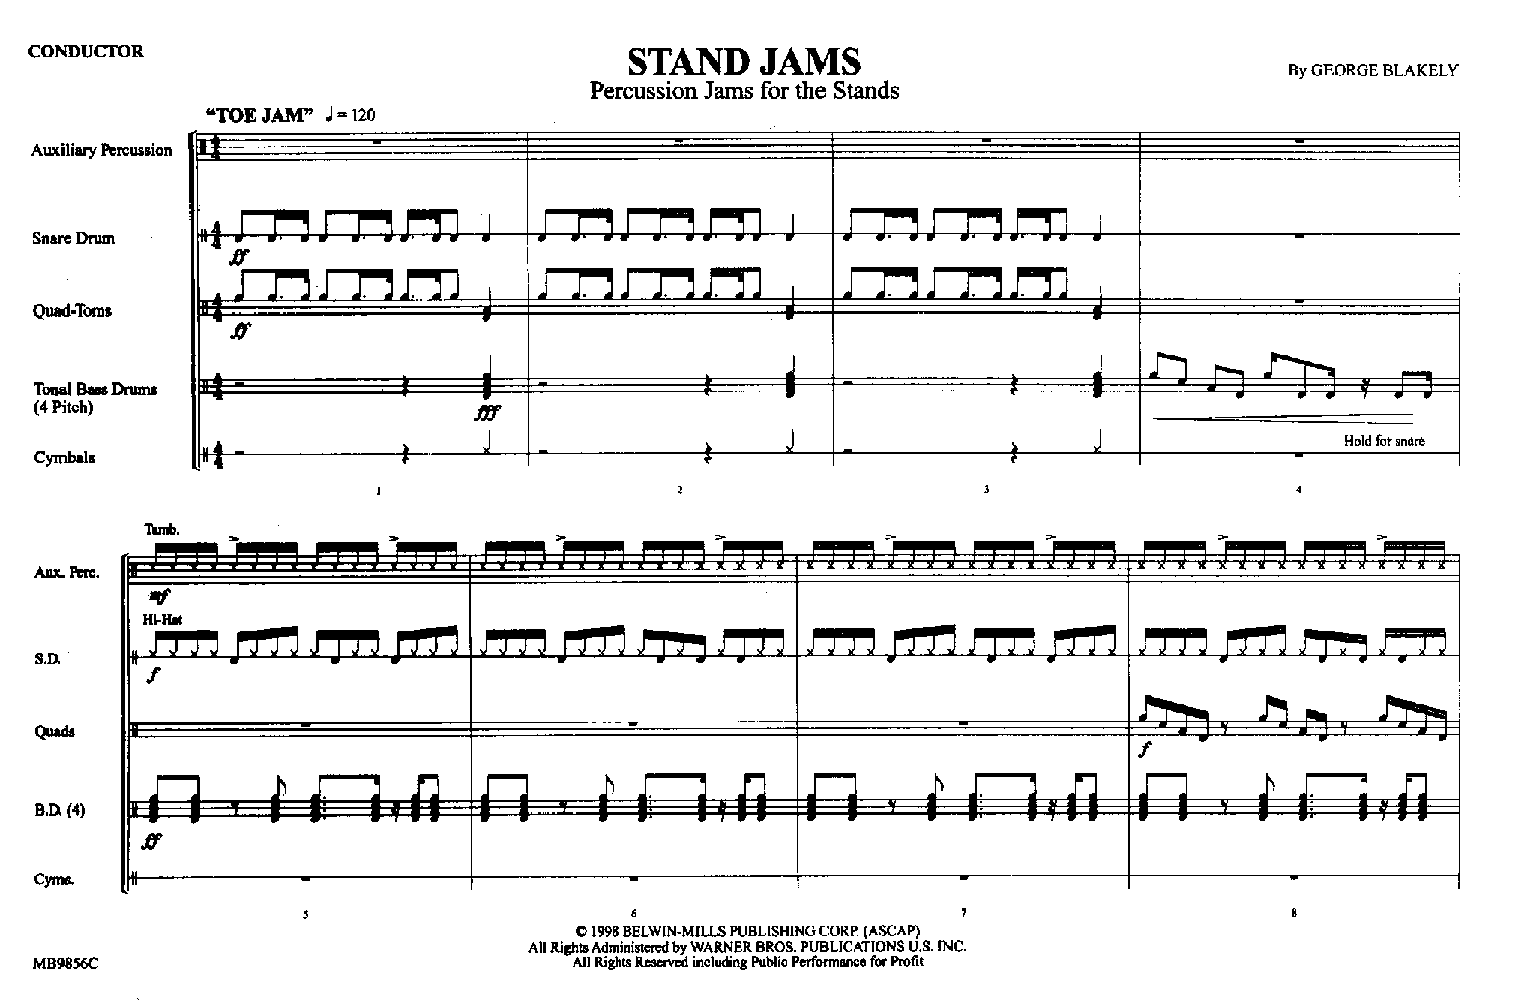 STAND JAMS PERCUSSION JAMS FOR THE STANDS BLAKELY